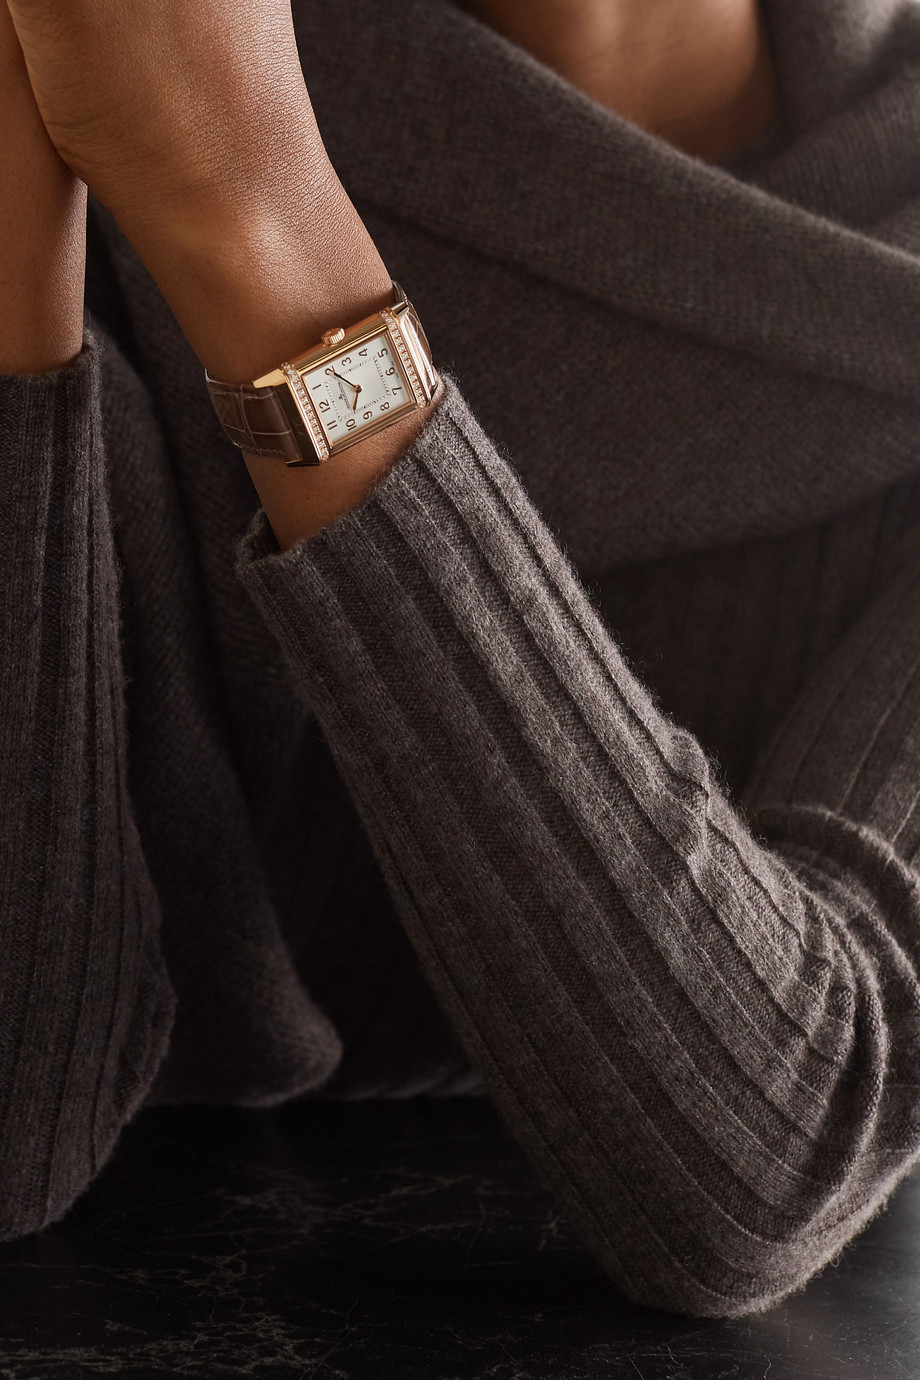 JAEGER-LECOULTRE Reverso Classic Duetto Automatic 24mm medium 18-karat rose gold, alligator and diamond watch